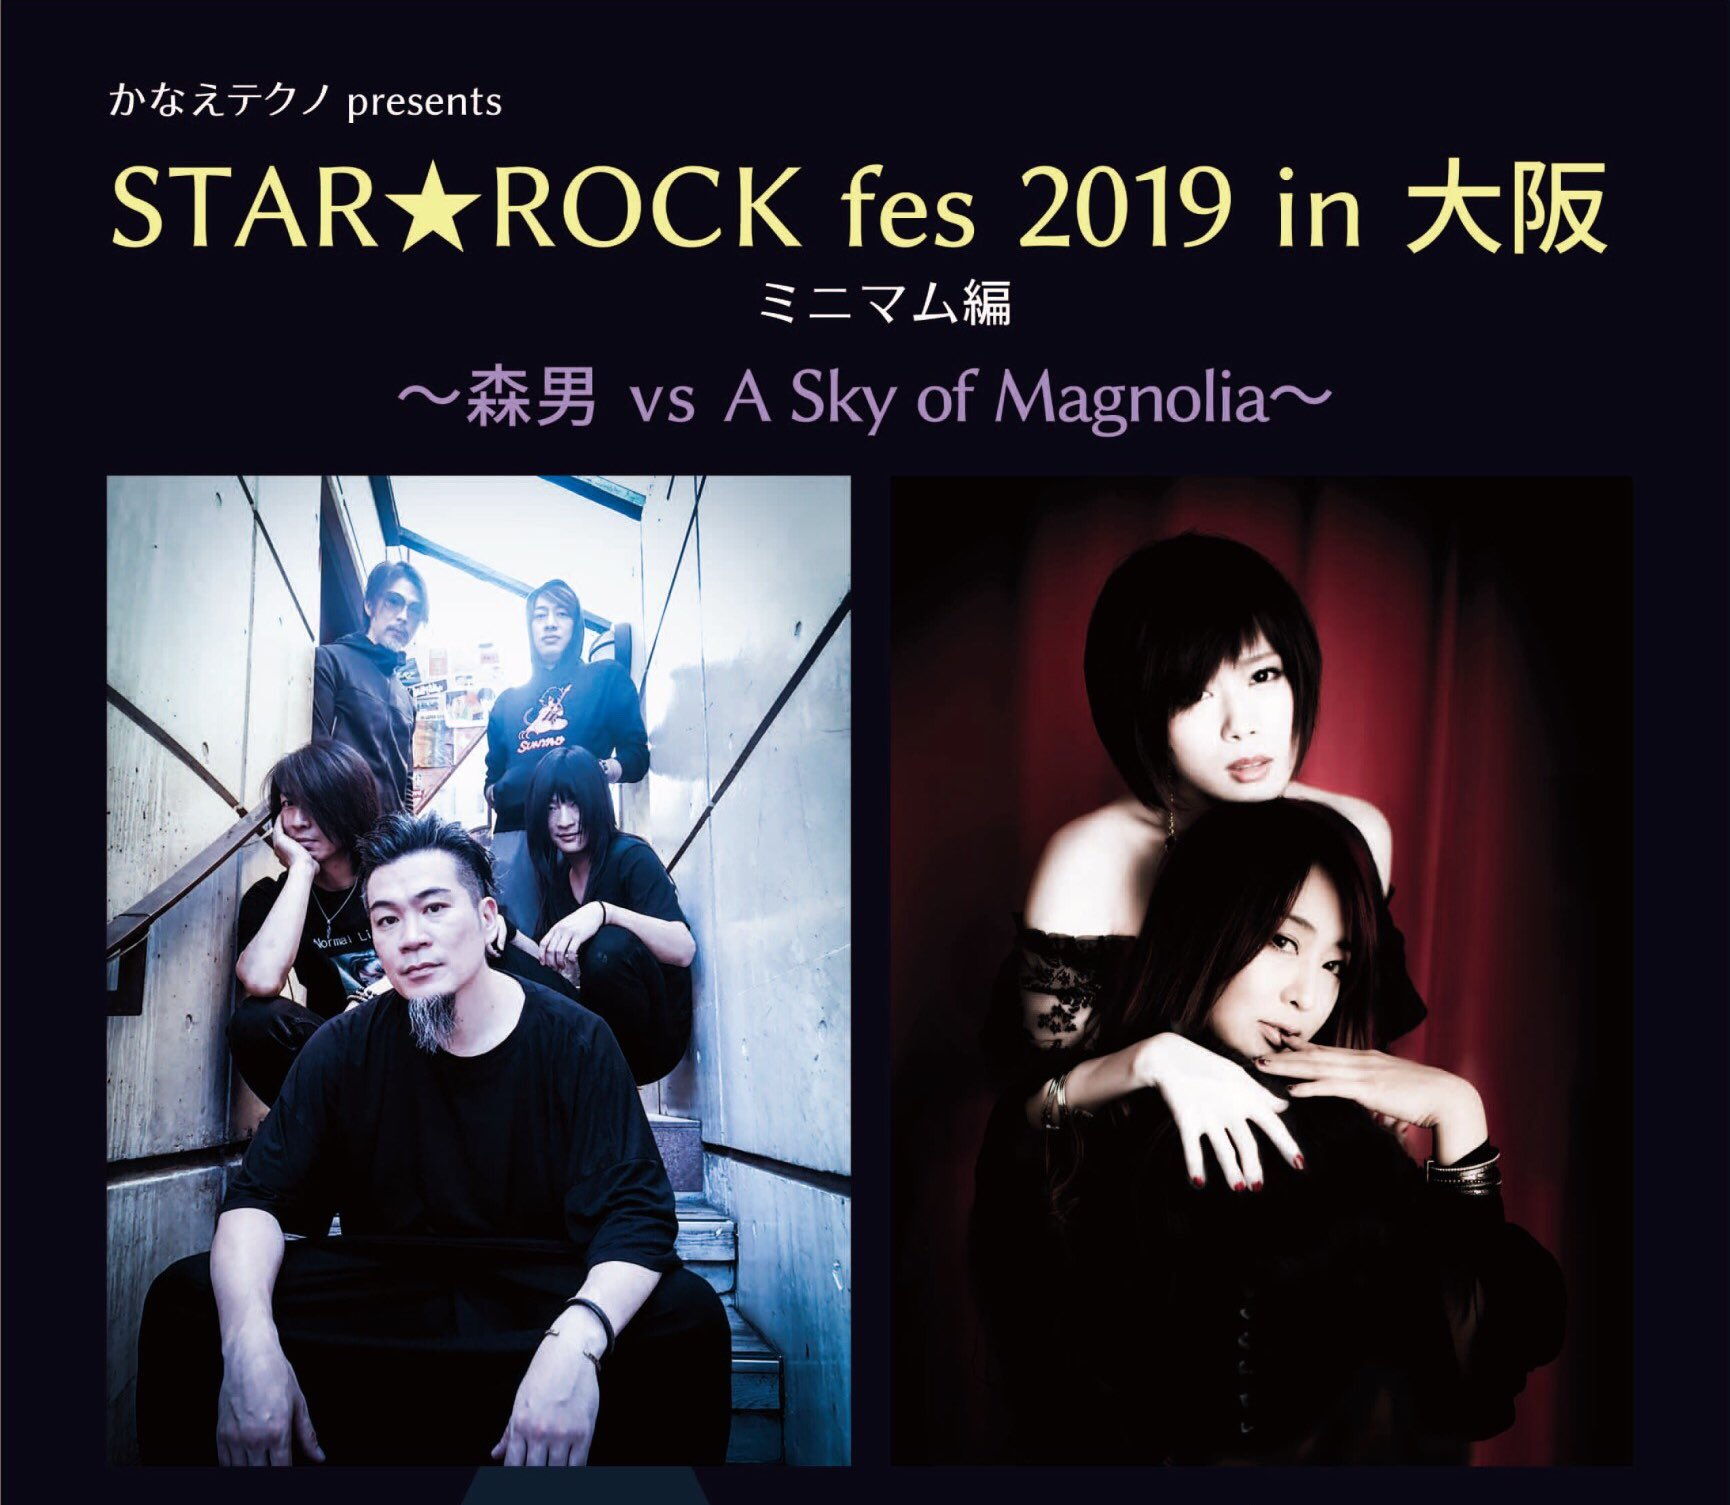 STAR★ROCK Fes2019 ミニマム編 〜森男 vs A Sky of Magnolia〜 かなえテクノPresents